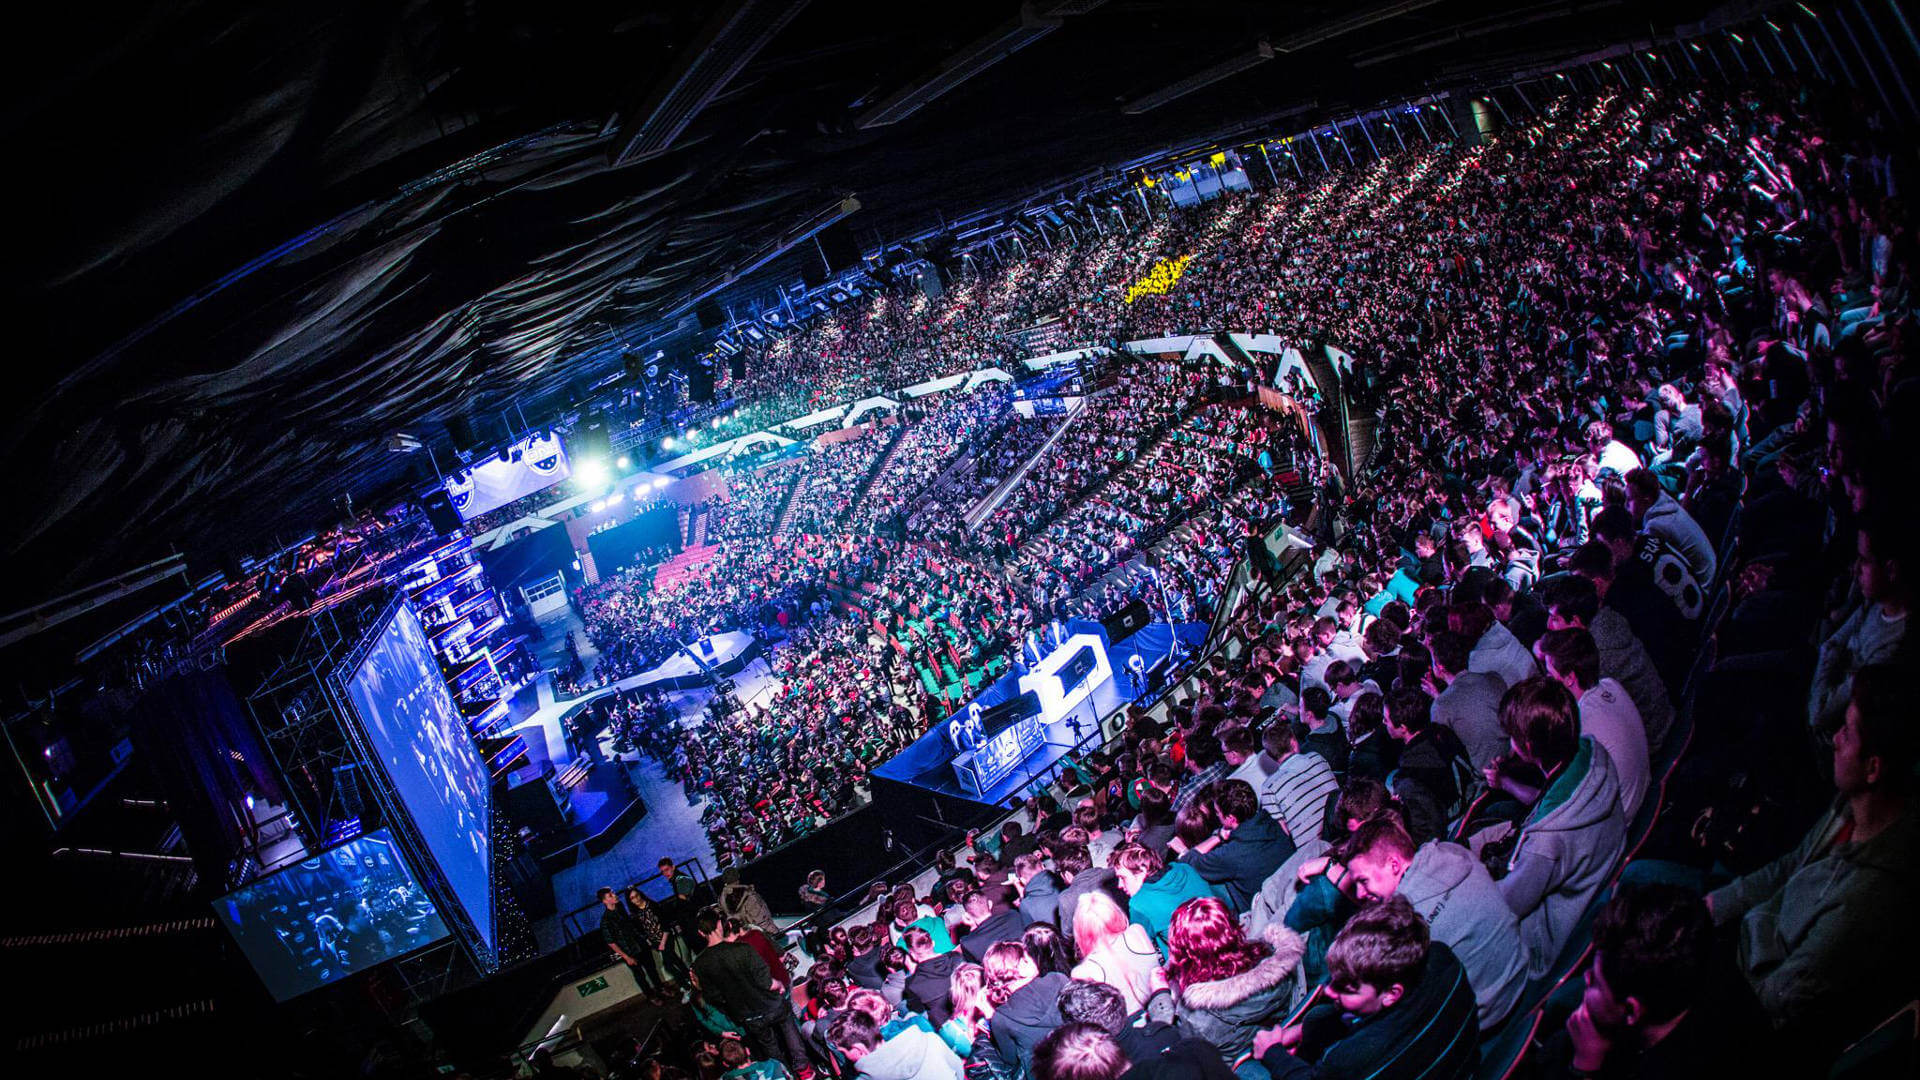 Pakistani Authorities Decided to Recognize Esports Officially